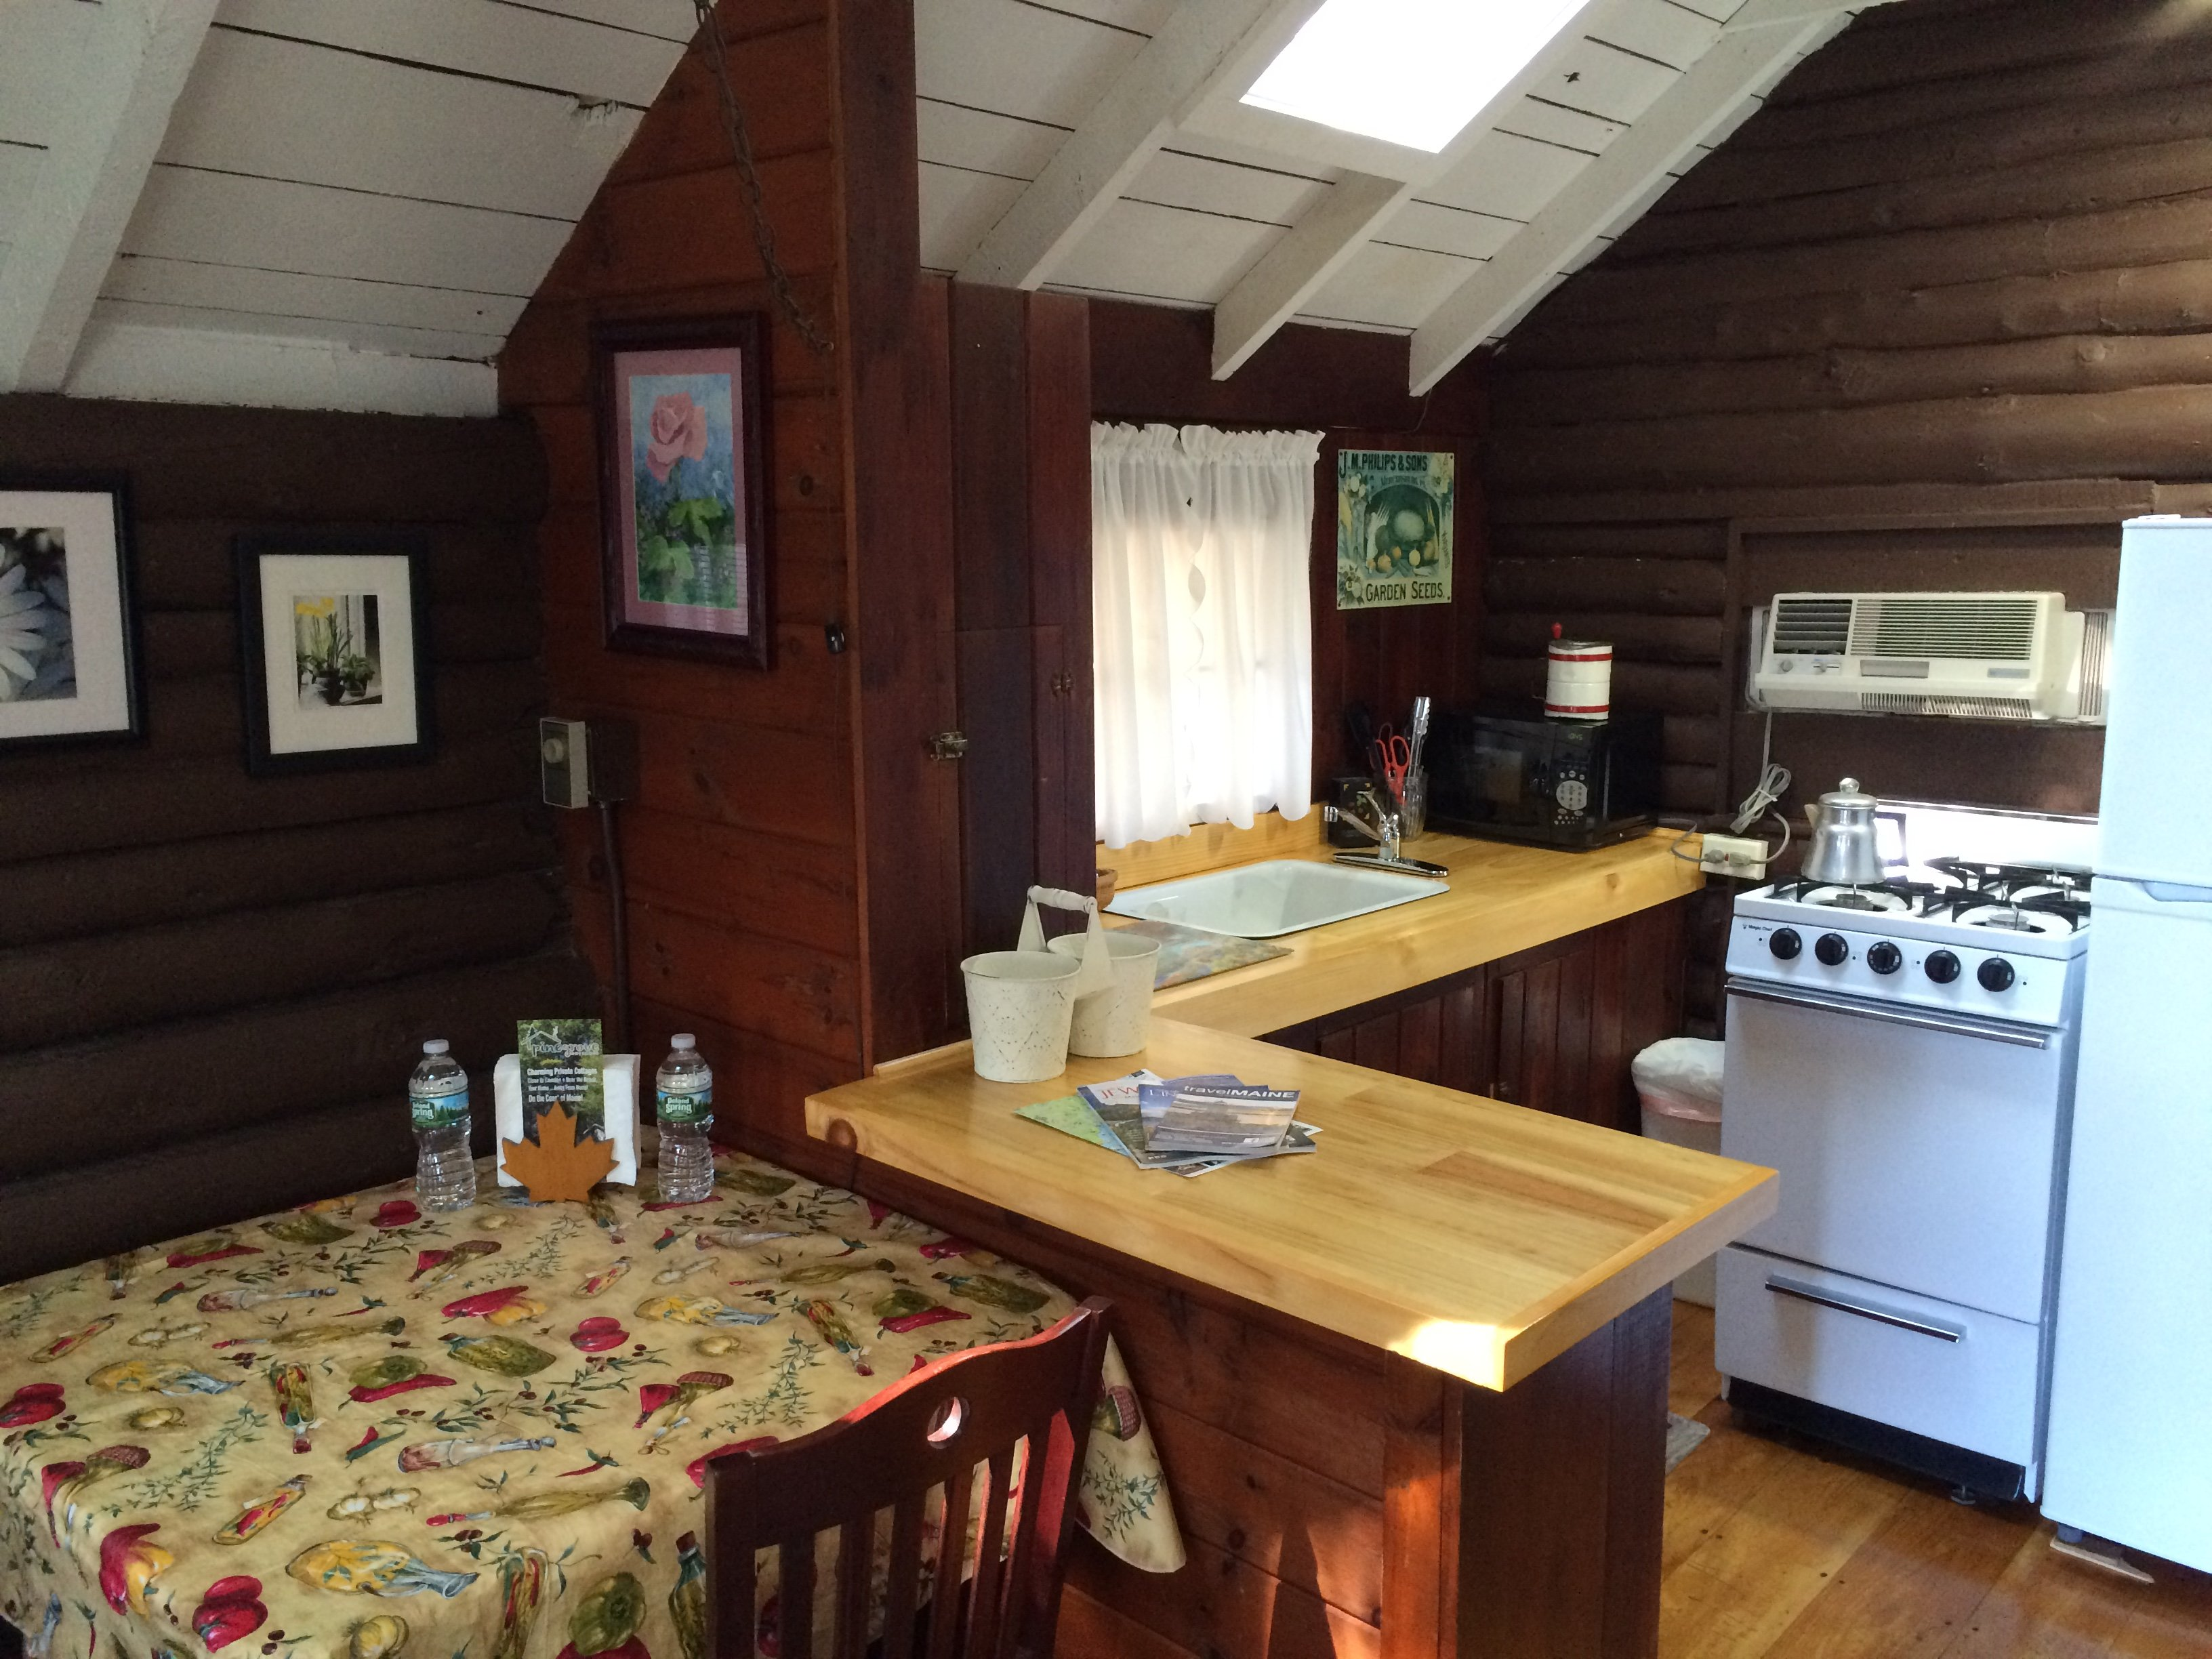 Fully furnished kitchen, perfect for meal prep, lobster cooking, or just some wine, cheese and crackers.